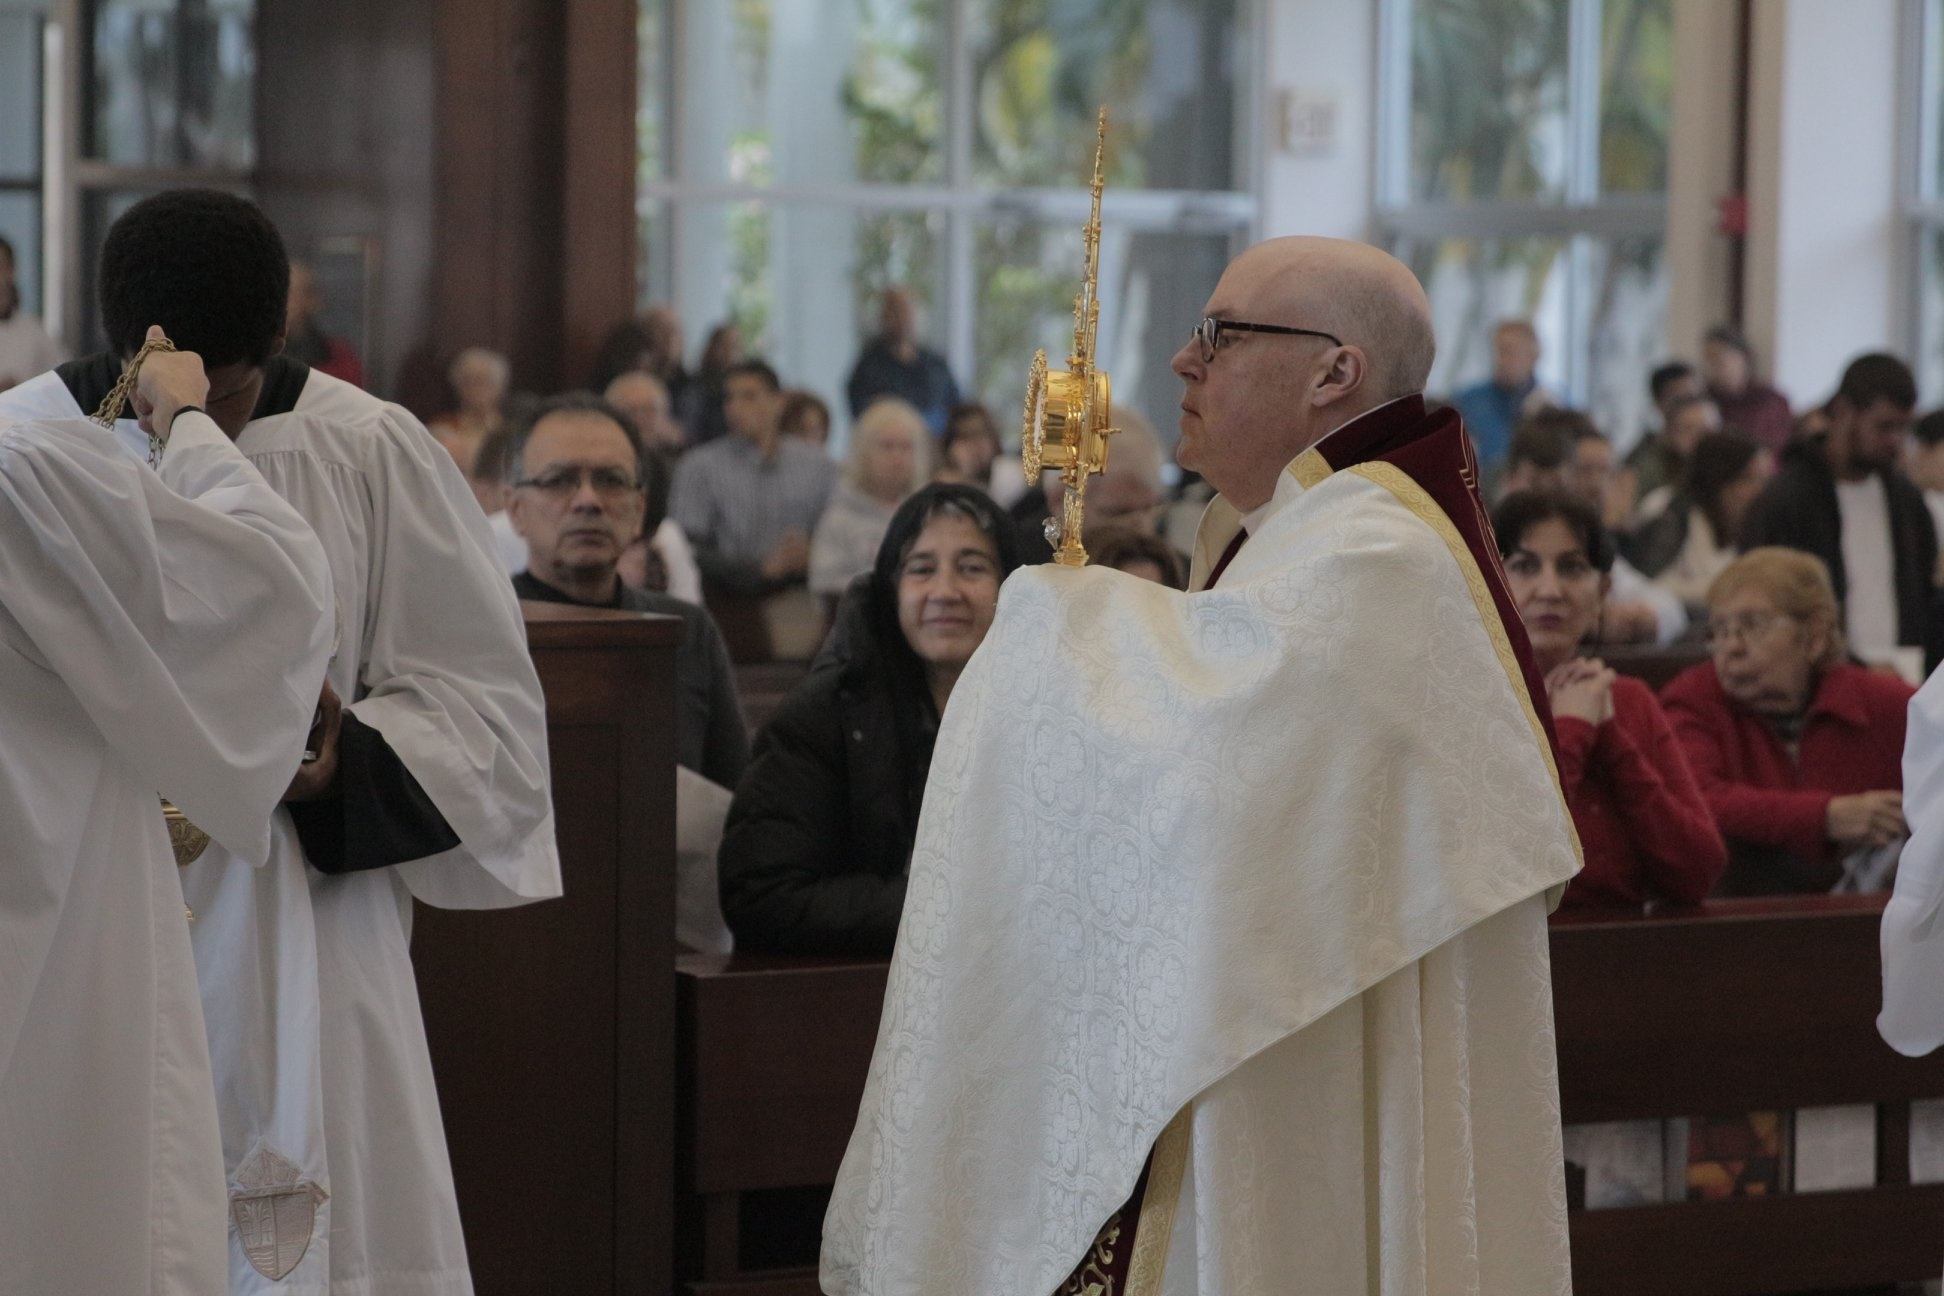 Father Healey leads a Eucharistic Procession.